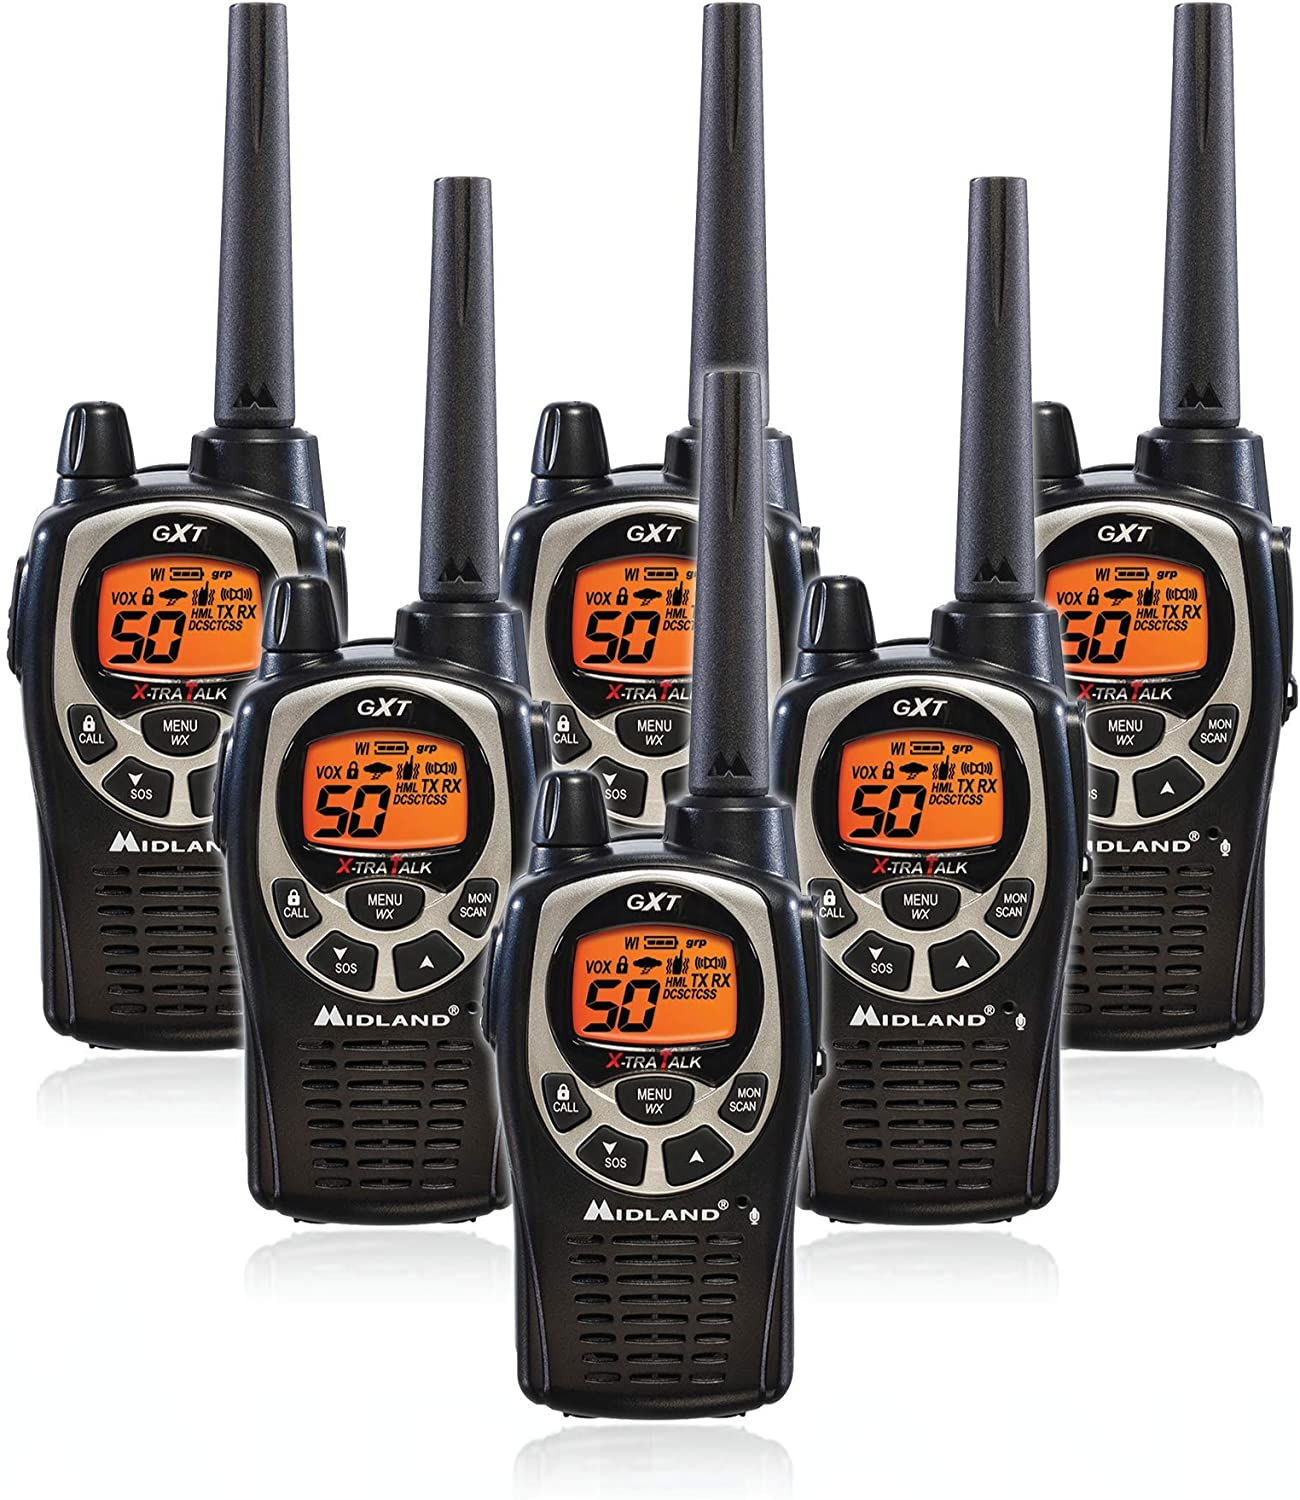 Midland GXT1000VP4 50 Channel GMRS Two-Way Radio - Up to 36 Mile Range Walkie Talkie - Black/Silver (Pack of 6)